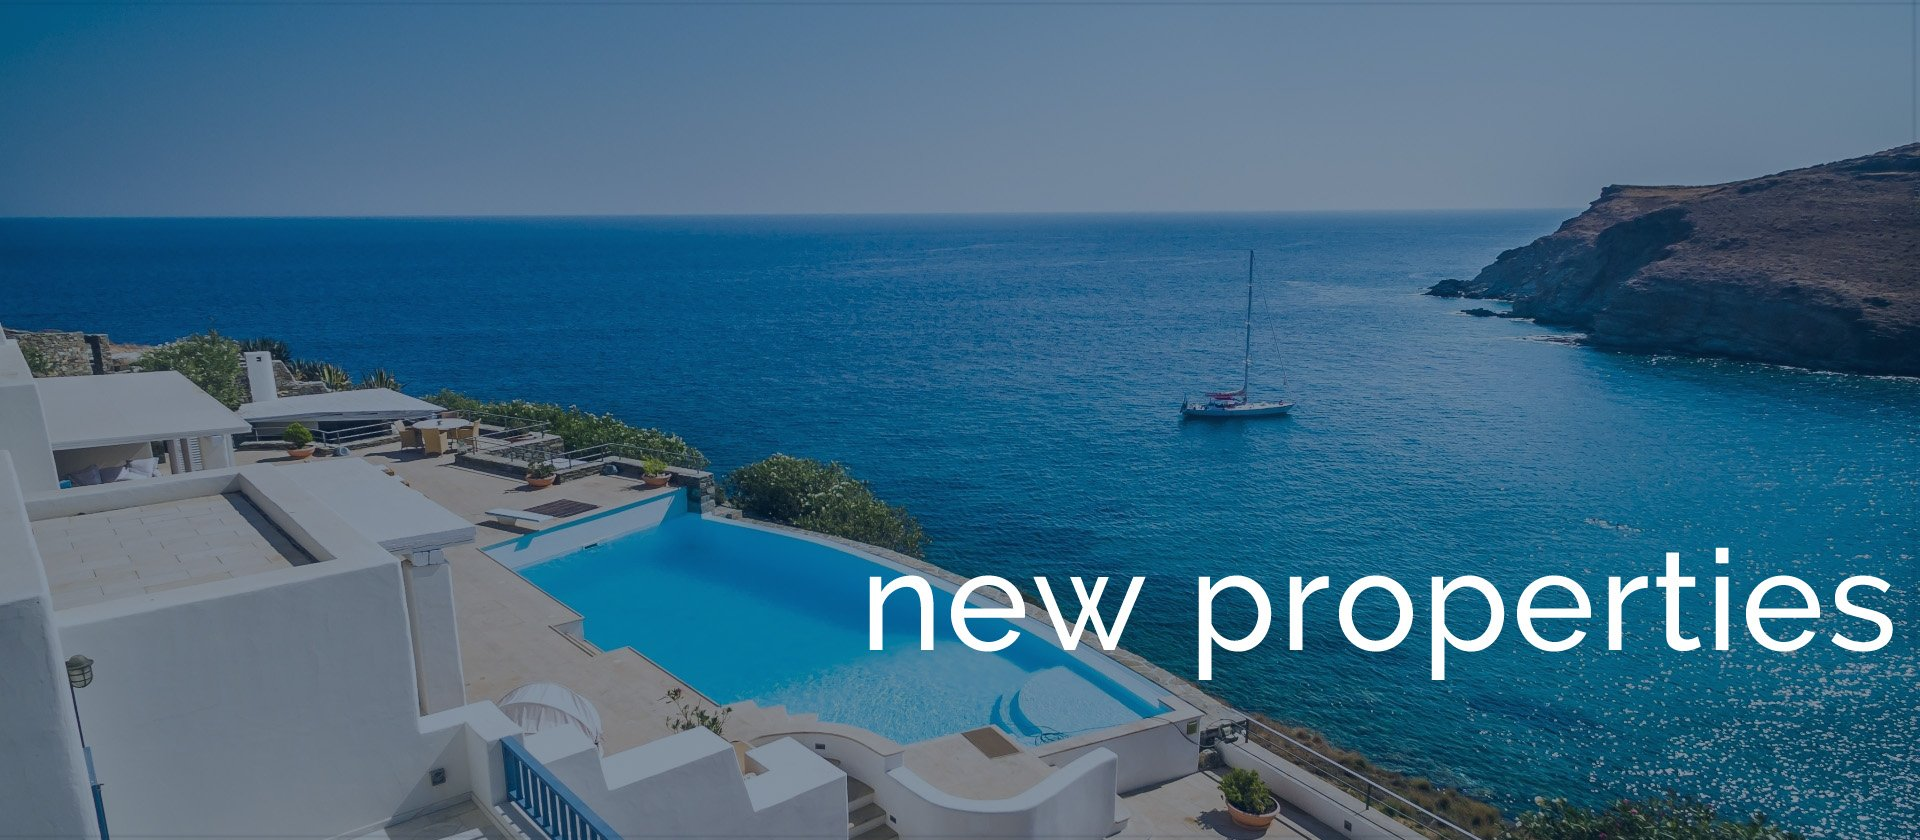 buying property in chania new properties, sell your property